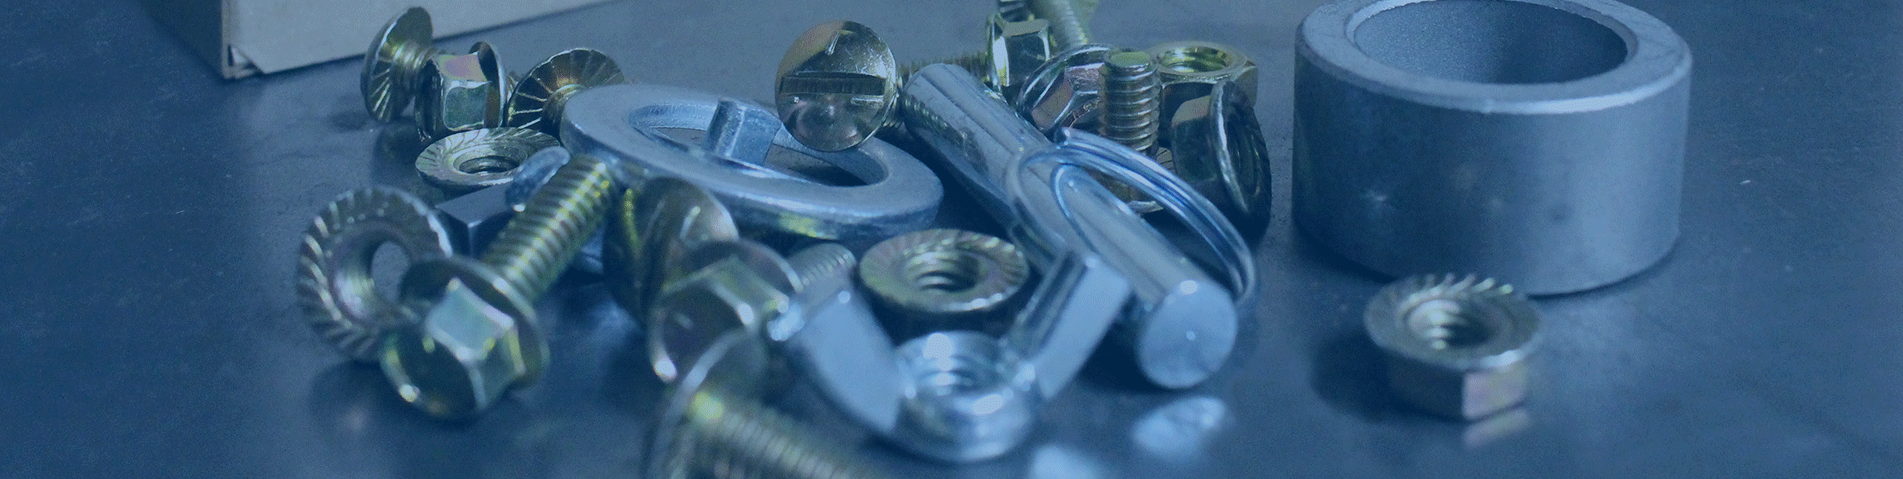 fasteners on a table